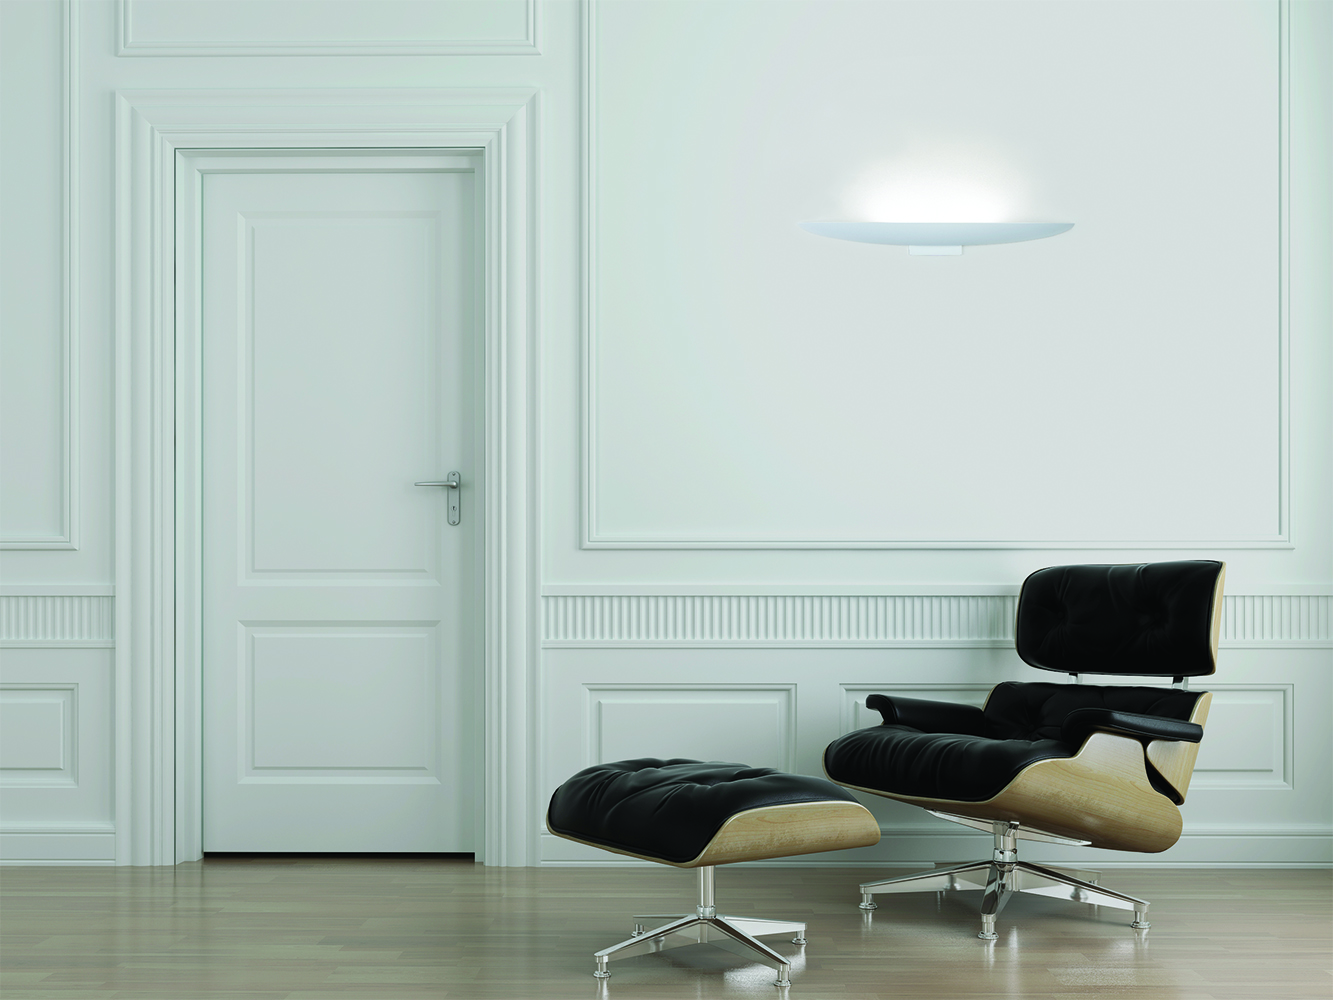 Escape wall sconce as an office lighting fixture, providing minimalism in a reception waiting area